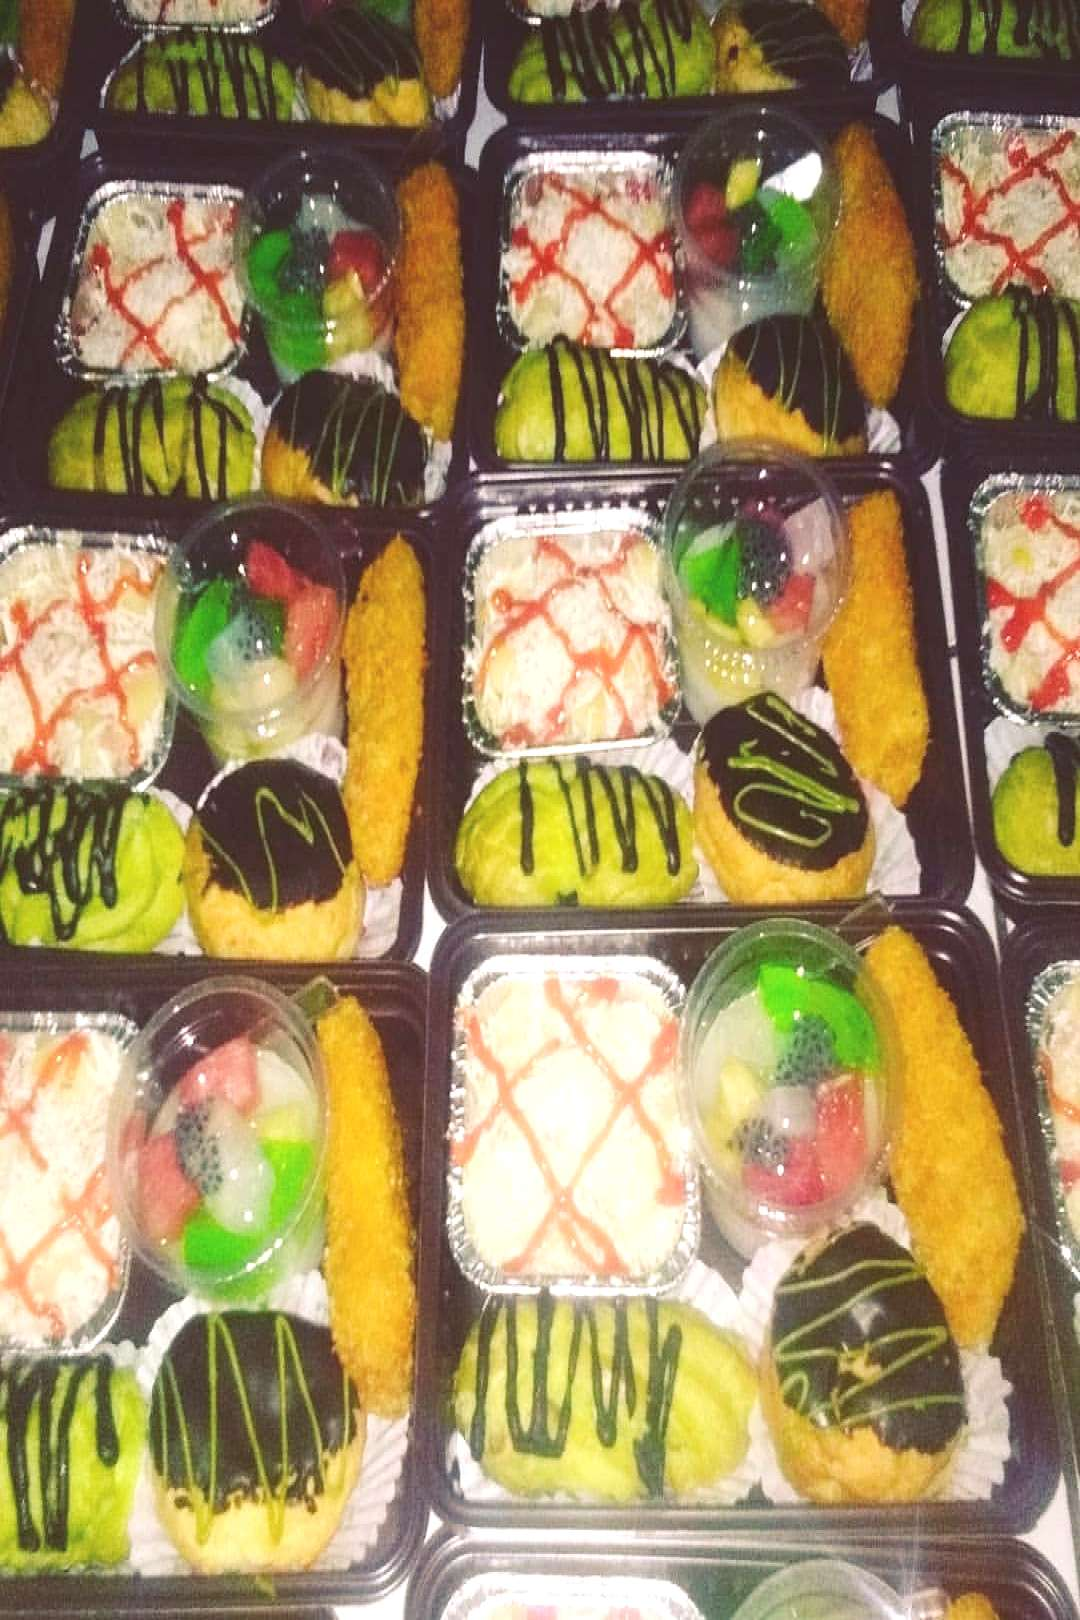 sushi and food